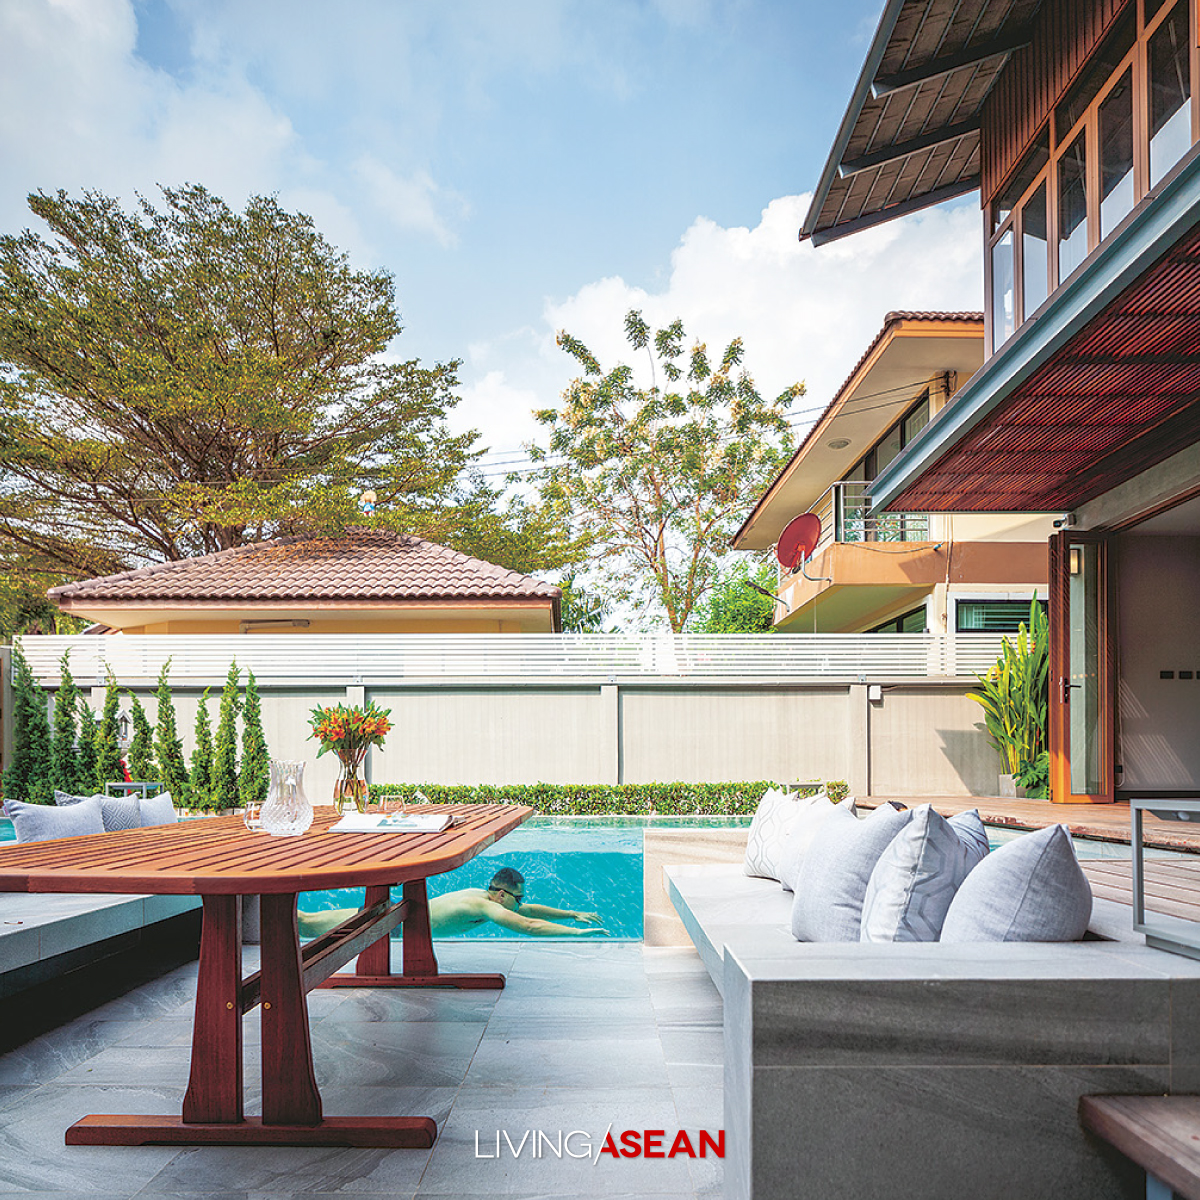 A Modern Tropical Home Inspired by Cluster House Design